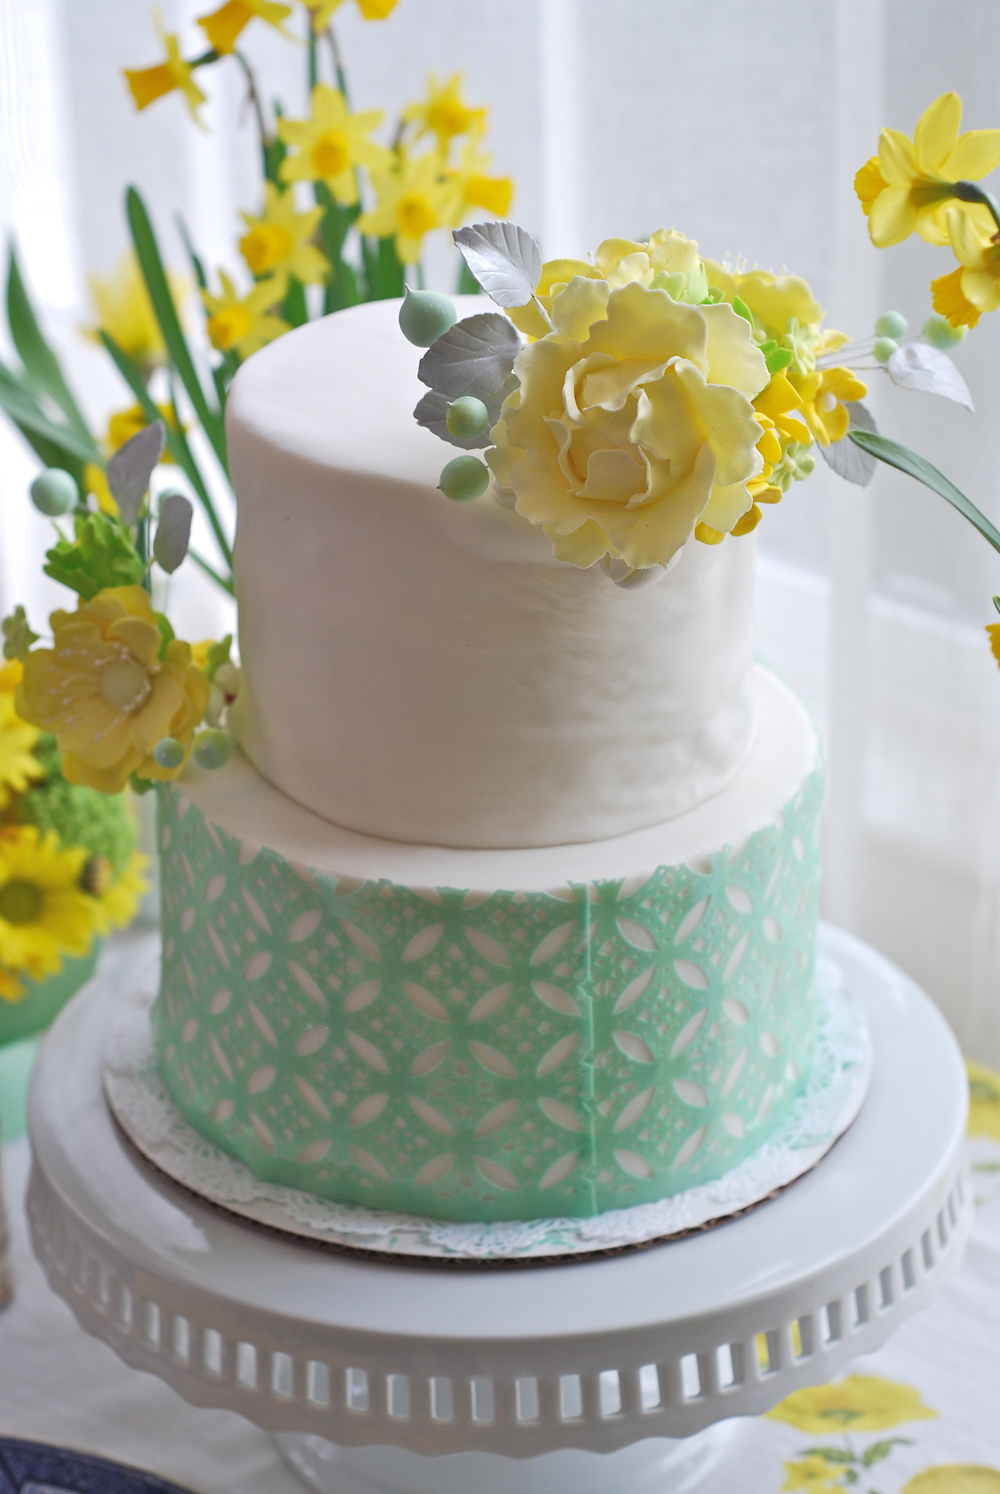 Fondant covered cake with sugar flowers and decorative, edible wafer paper bottom tier.